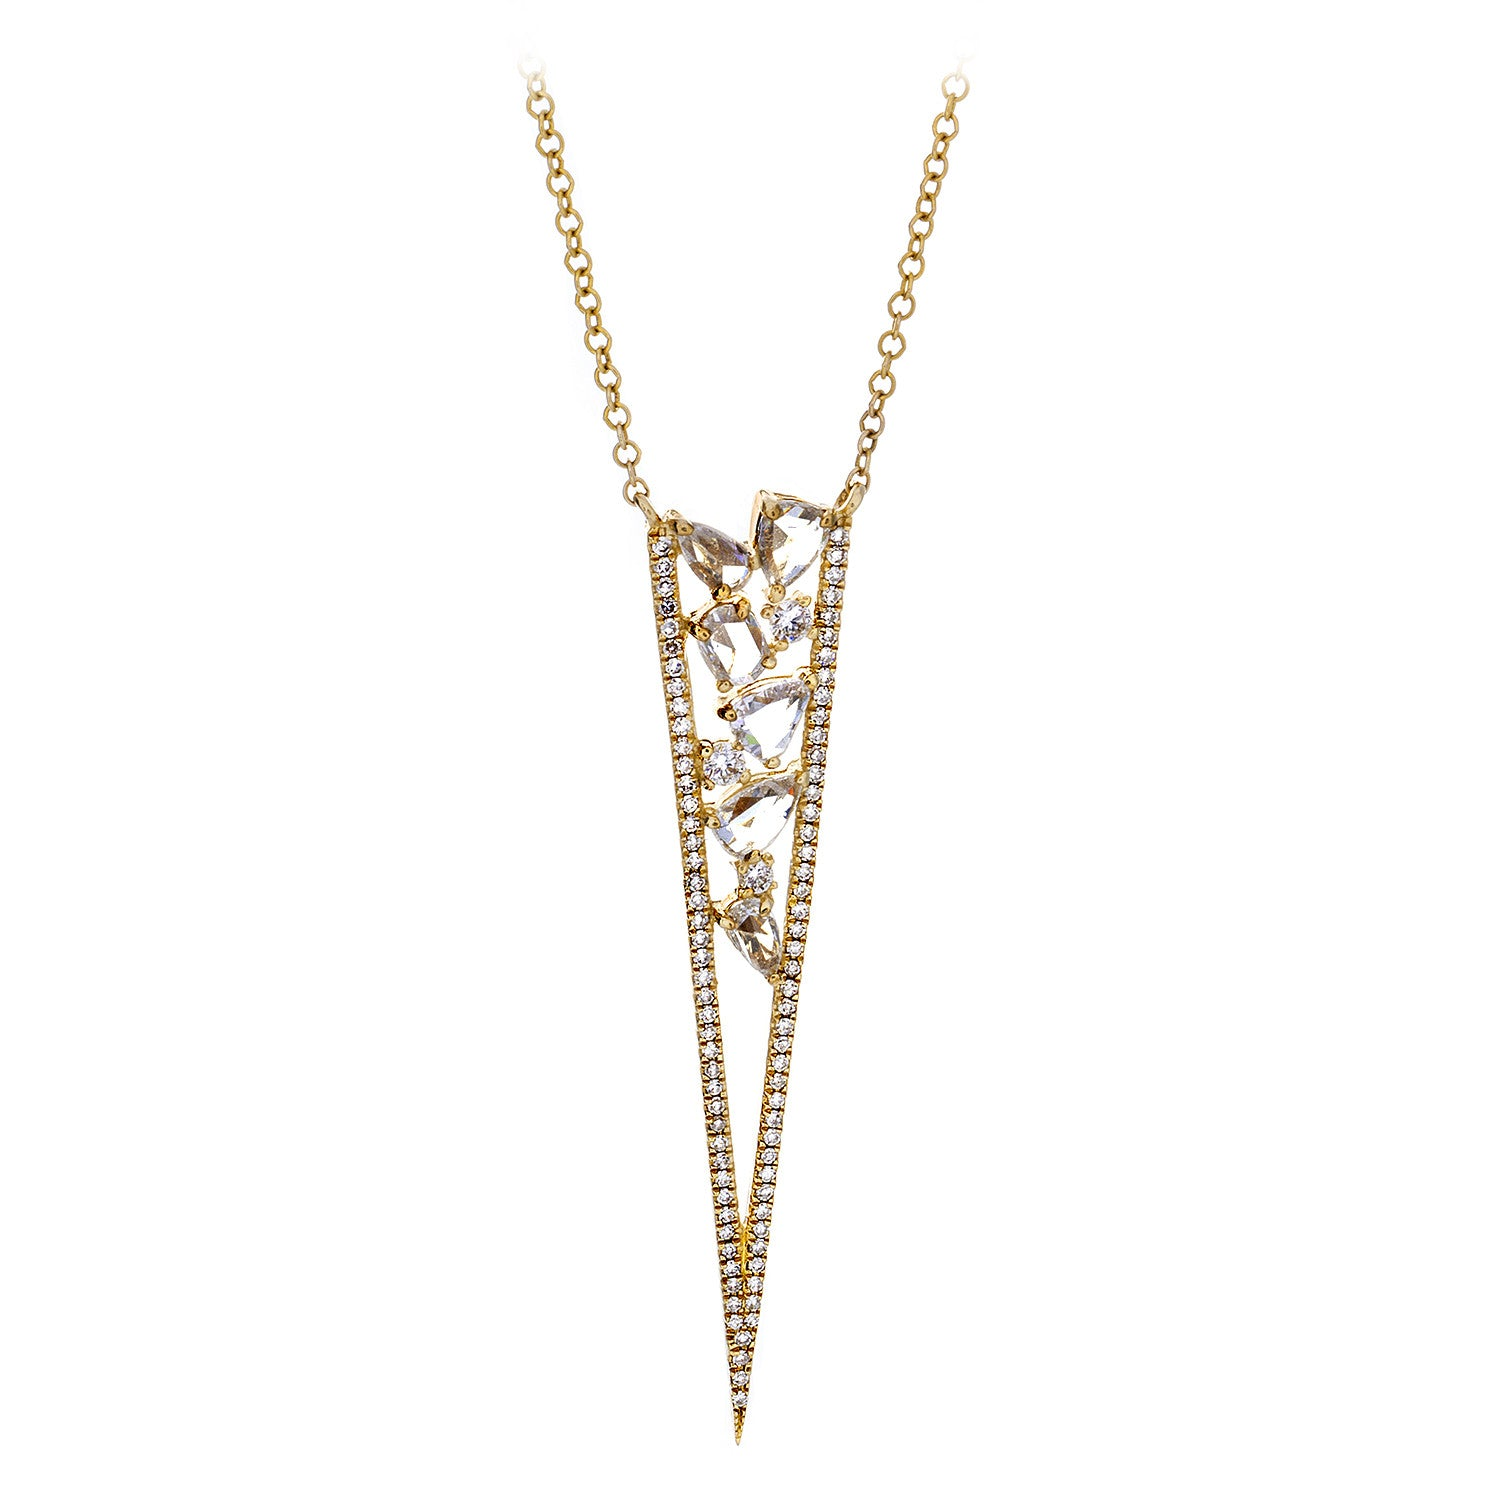 Rosecut Diamond, Pavé & 14K Yellow Gold Spike Necklace - SOLD/CAN BE SPECIAL ORDERED WITH 4-6 WEEKS DELIVERY TIME FRAME